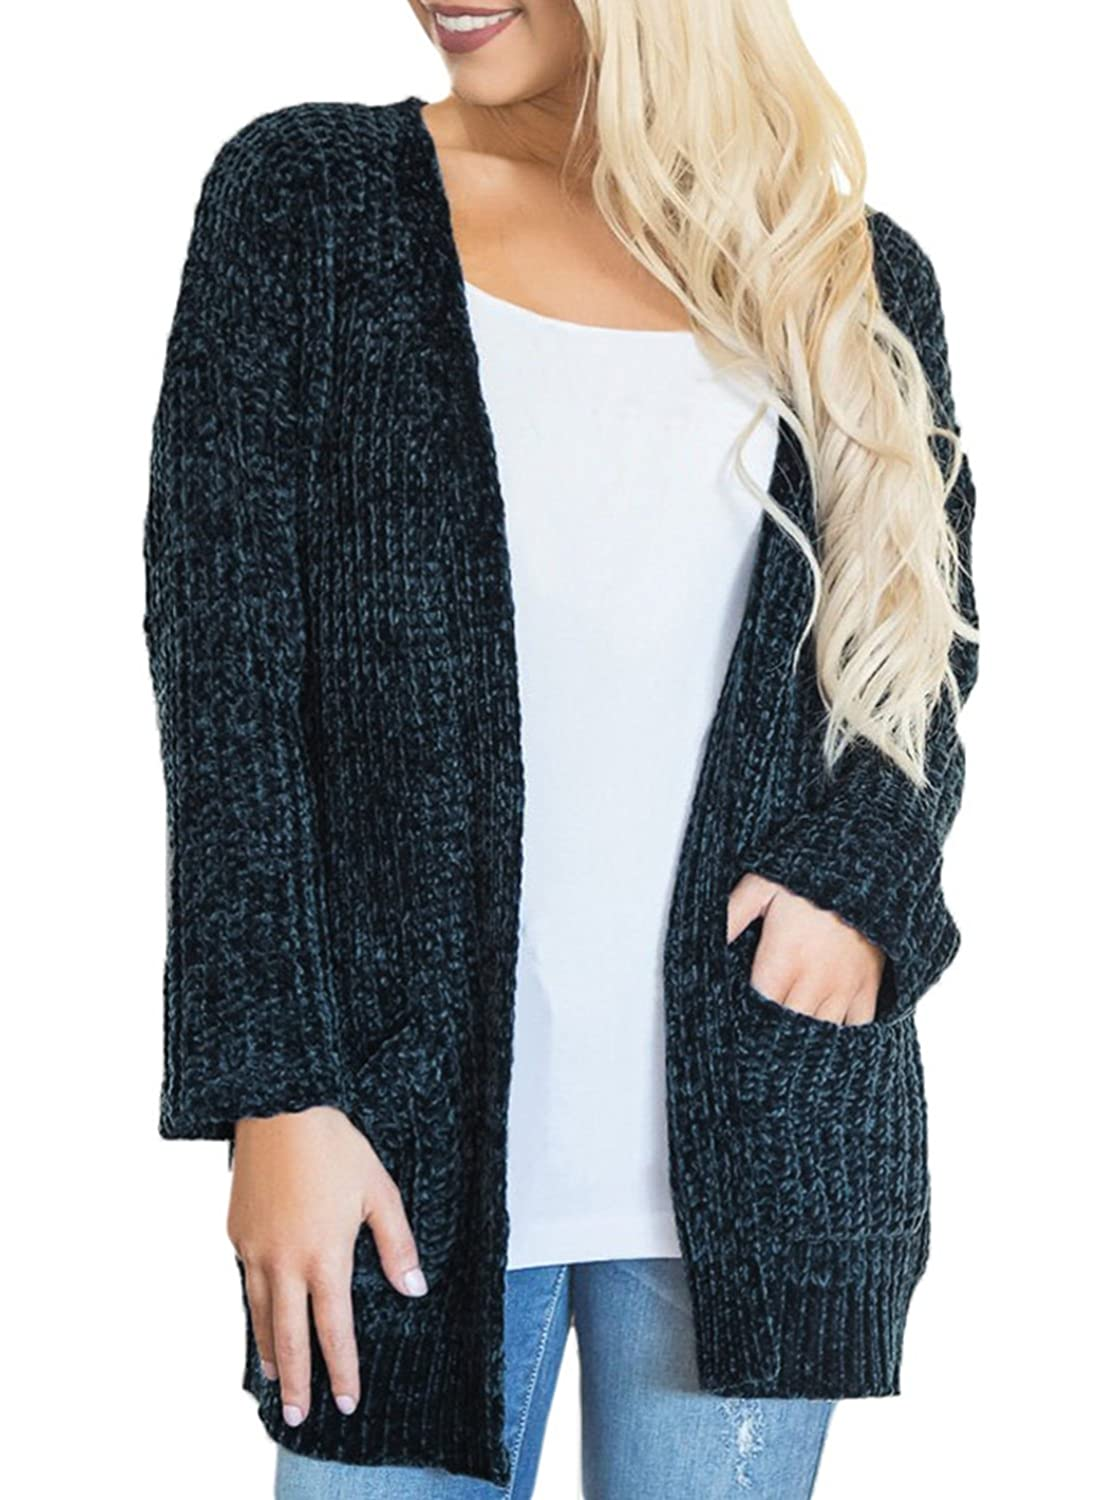 Dearlove Women's Super Cozy Open Front Knitted Cardigans Sweater Coat Pockets DL27884